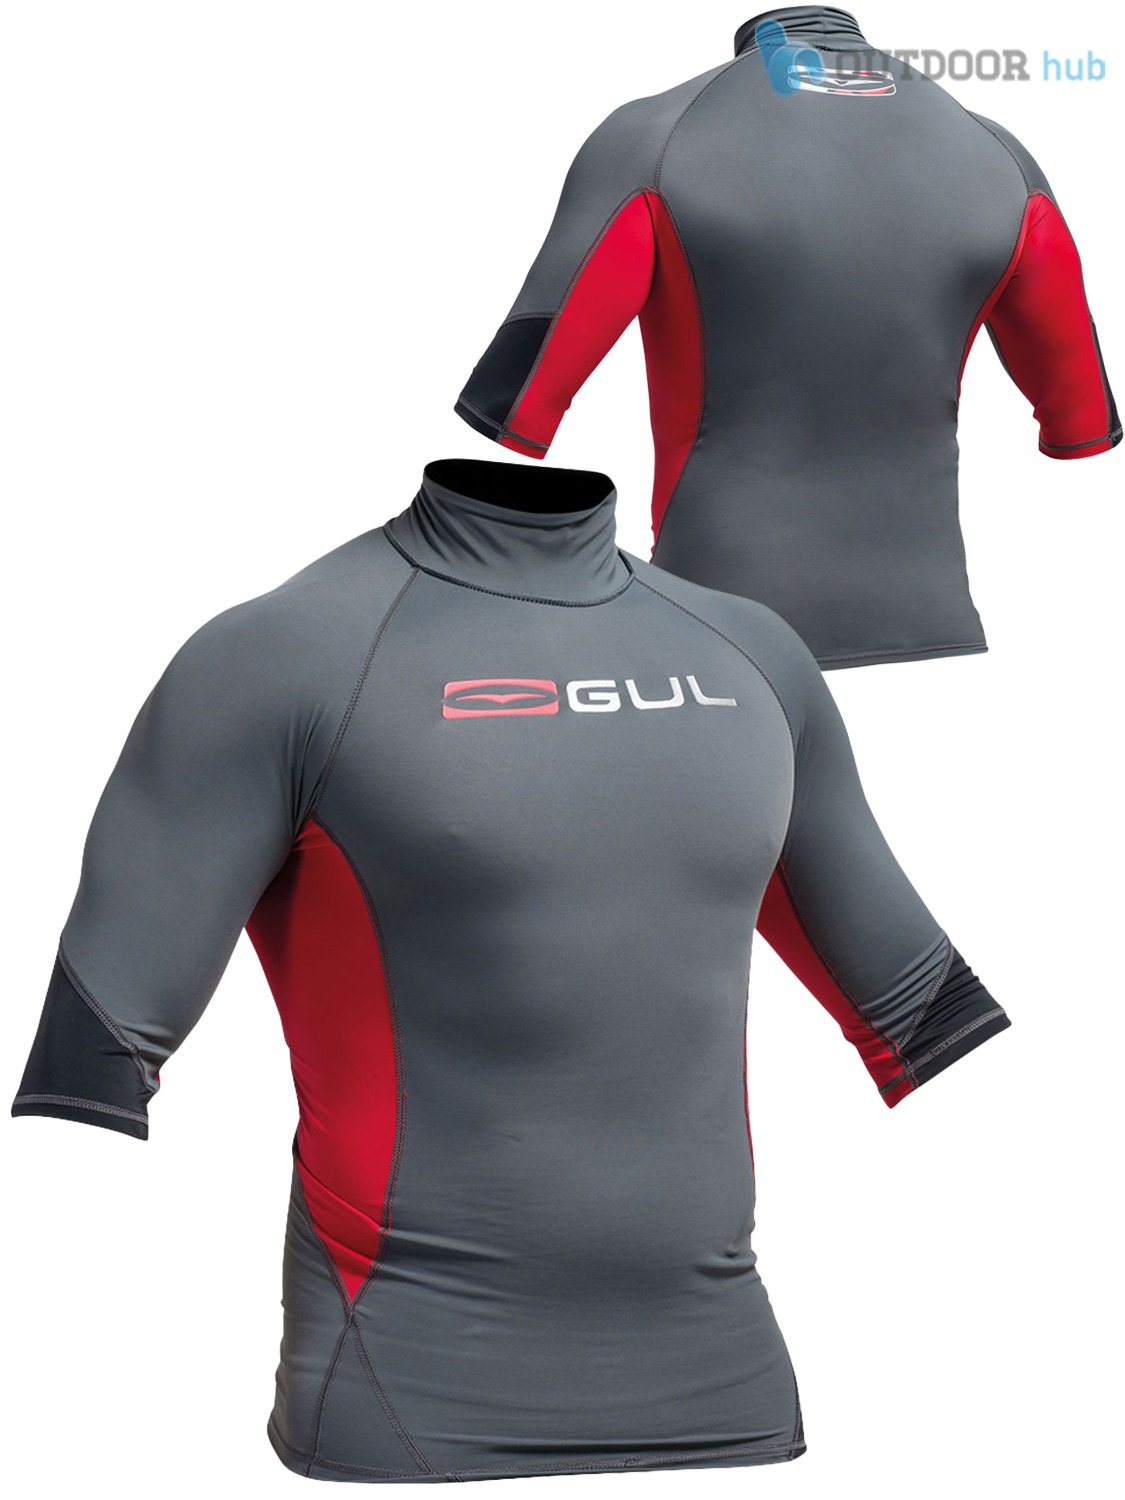 Gul-Xola-Mens-Short-Sleeve-Rash-Guard-Vest-Wetsuit-Top-UV-50-Surf-Swim-Dive thumbnail 4